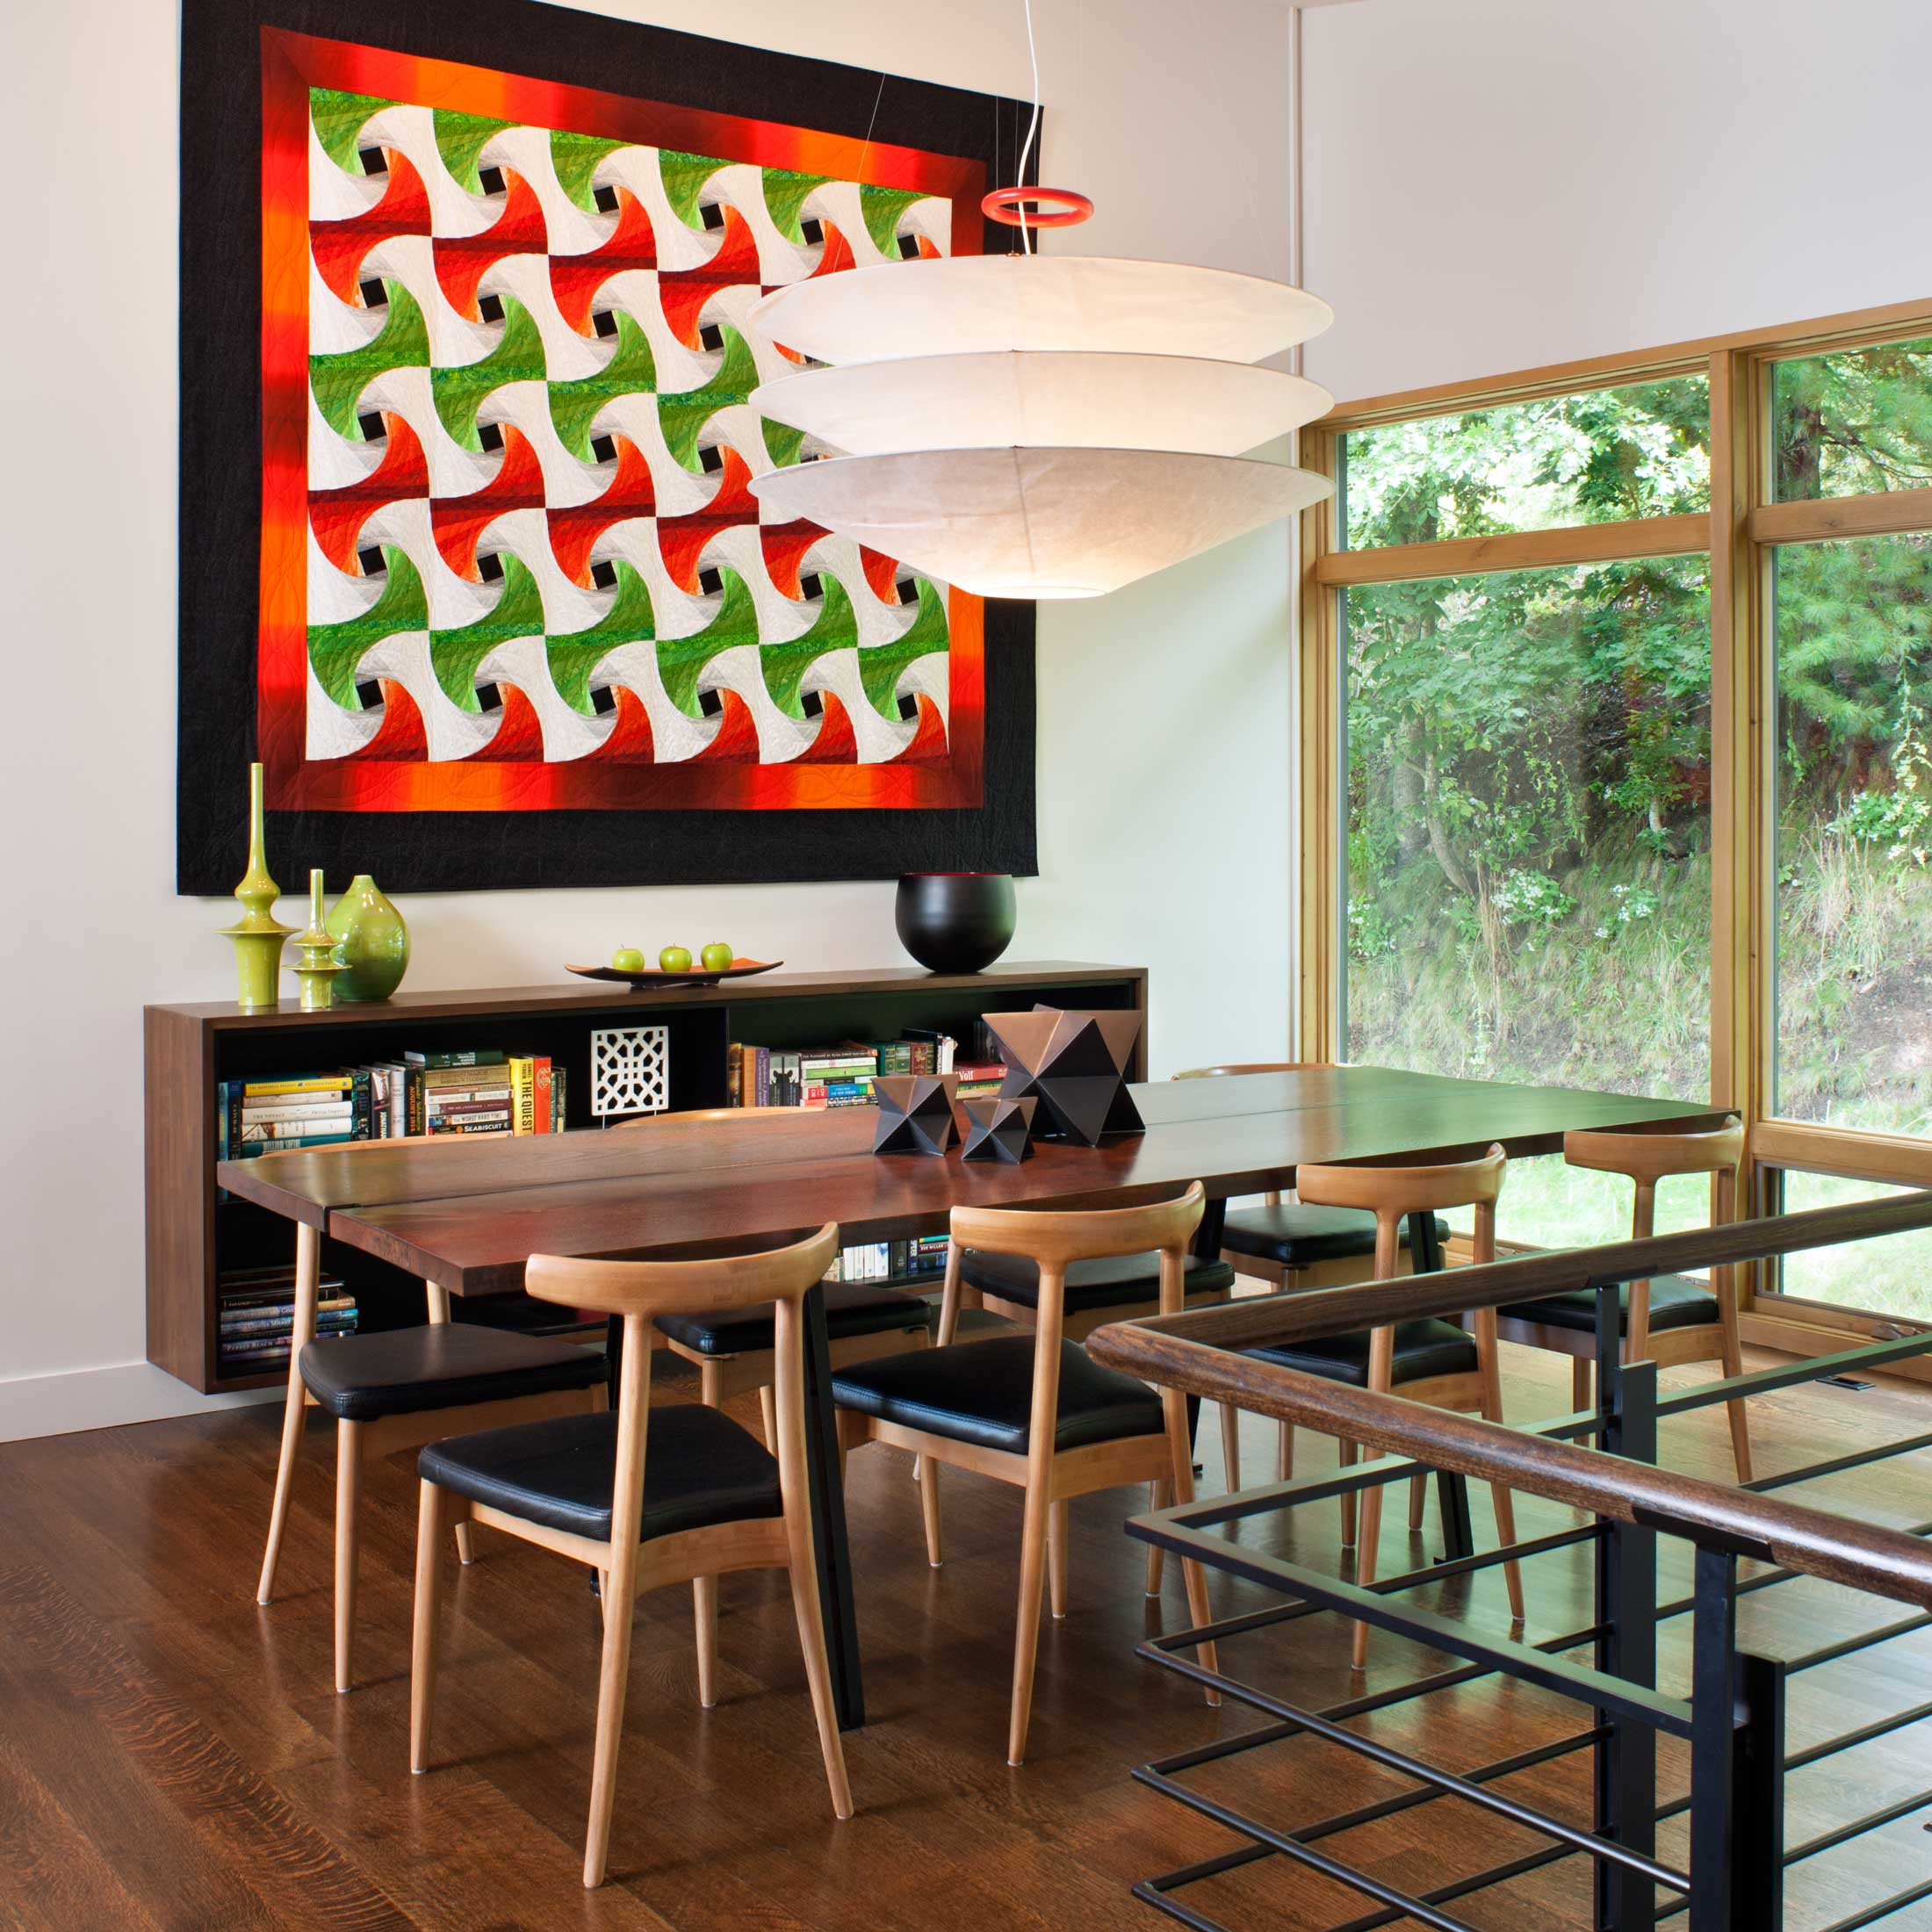 Modern art-dining area with modern architecture for remodel